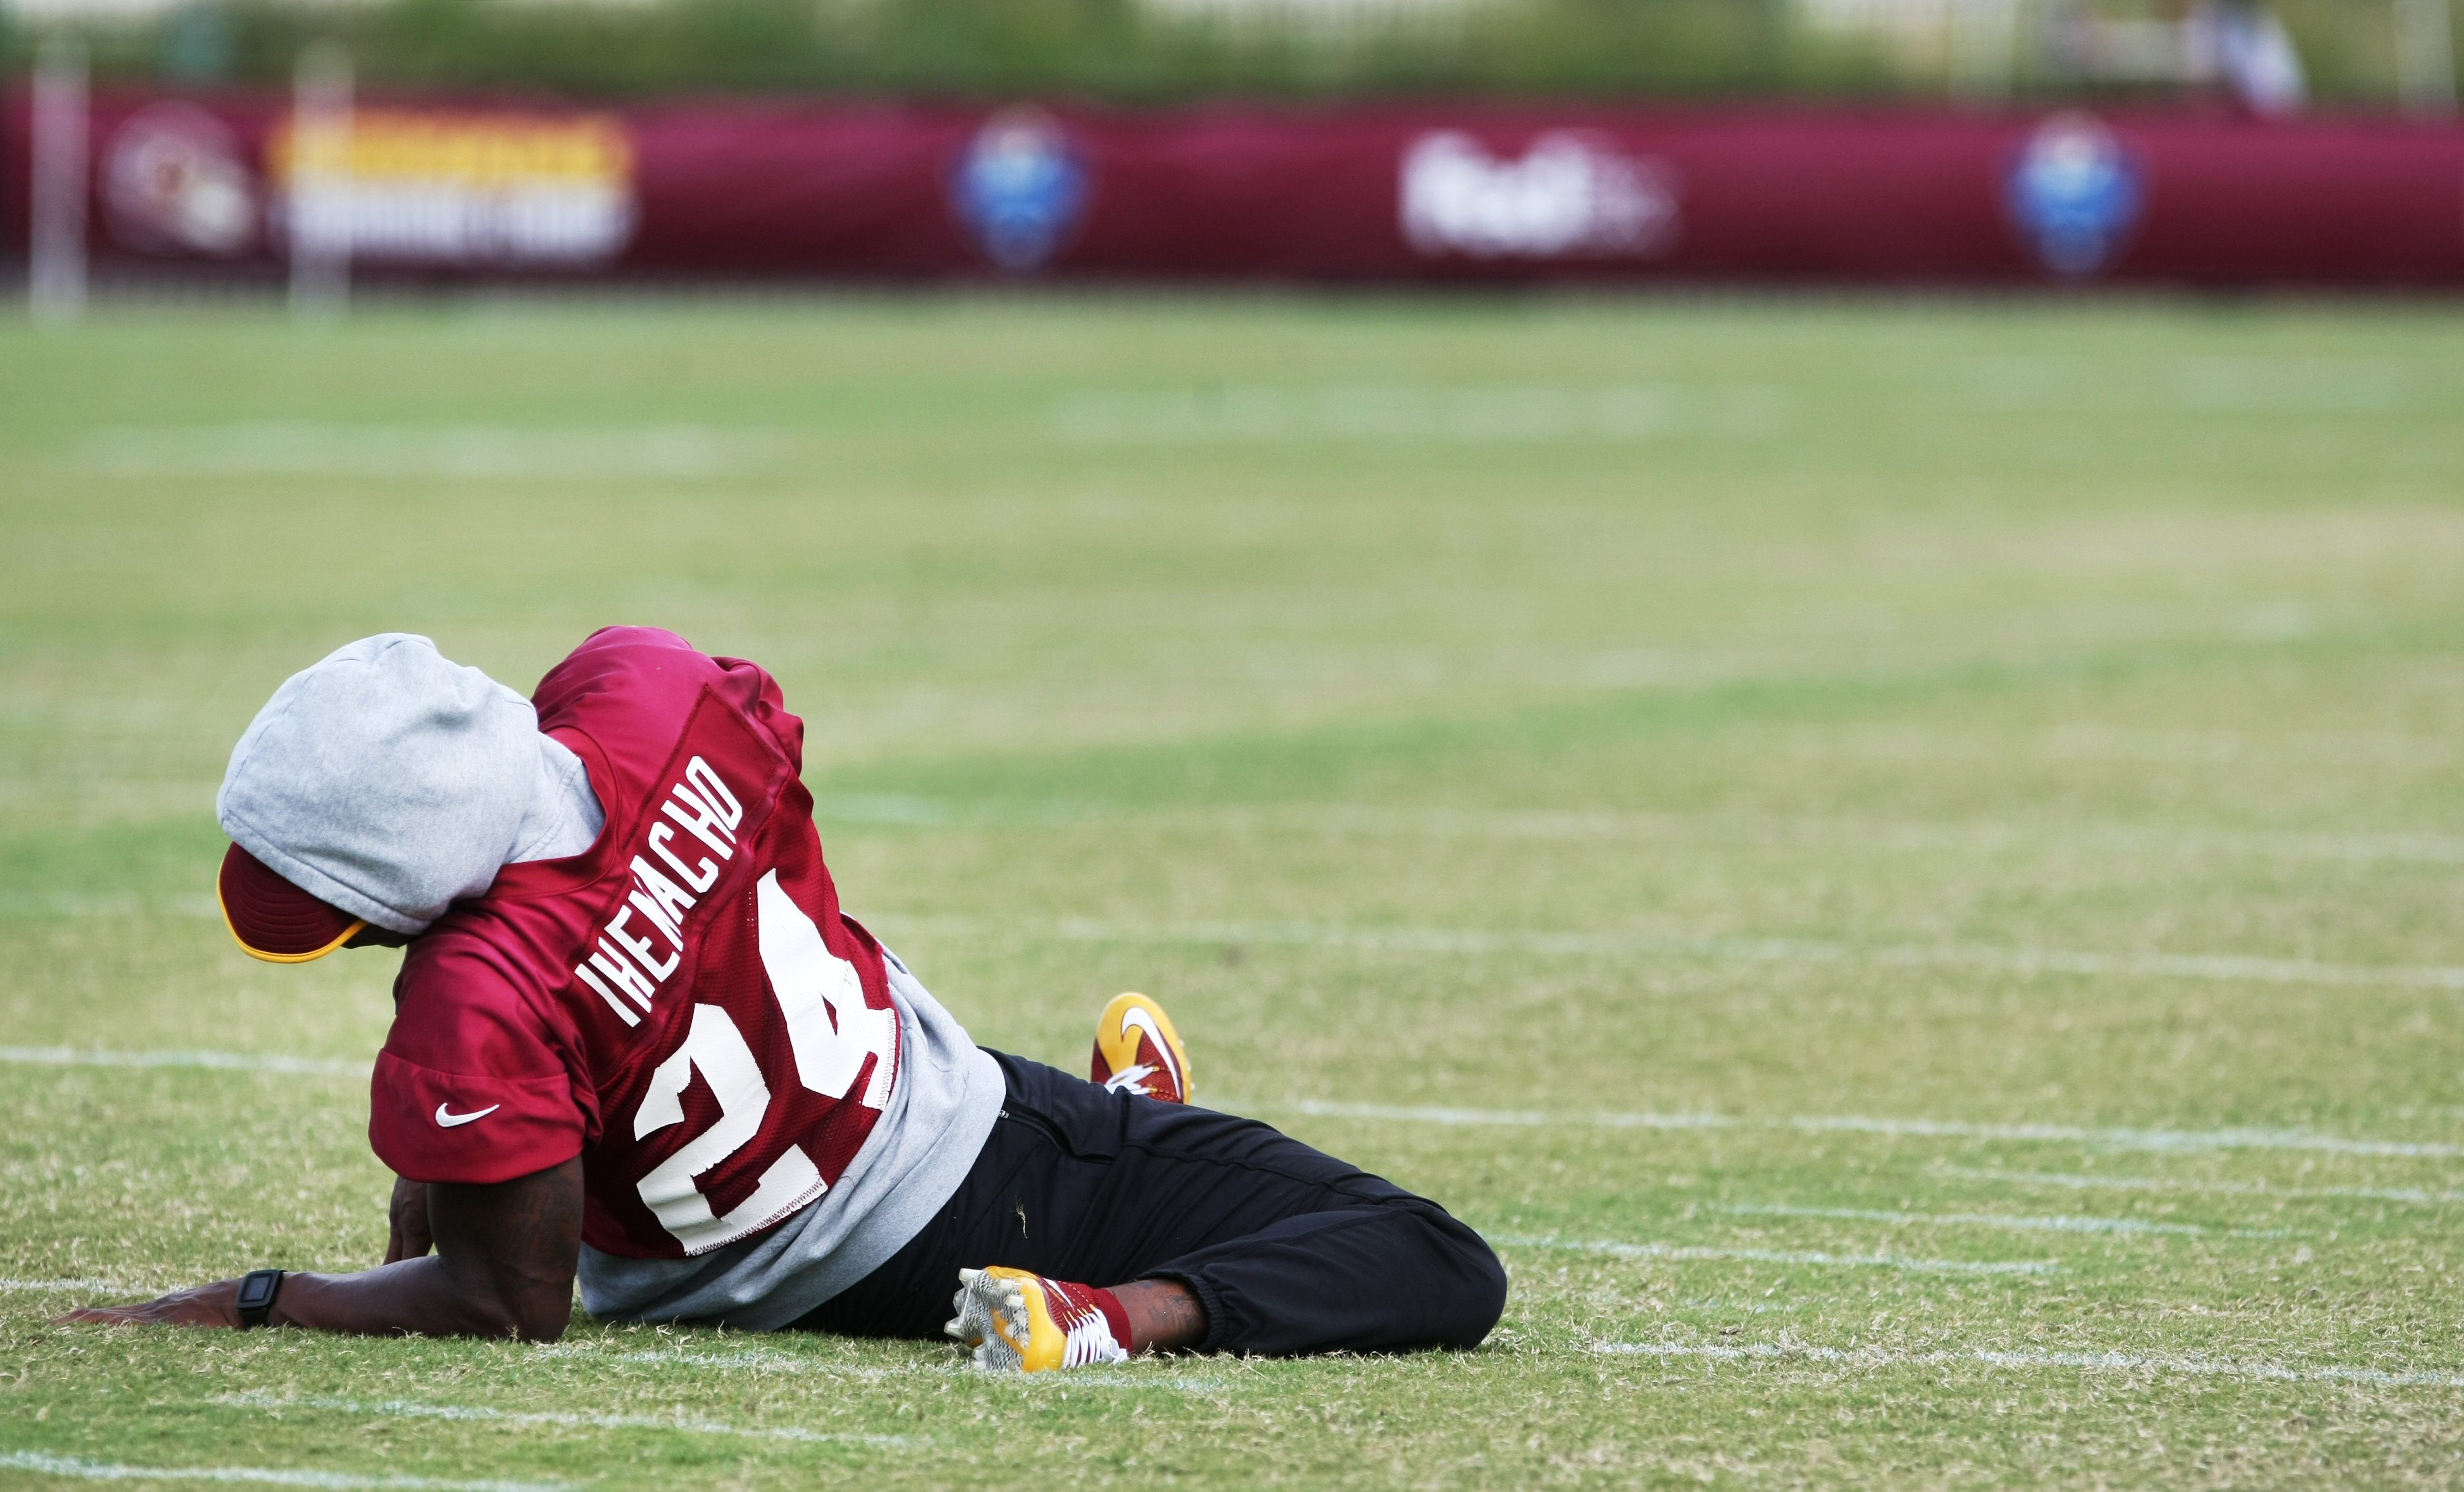 Washington Redskins defensive back Duke Ihenacho stretches during the team's NFL football training camp in Richmond, Va., Monday, Aug. 3, 2015.   (AP Photo/Jason Hirschfeld)